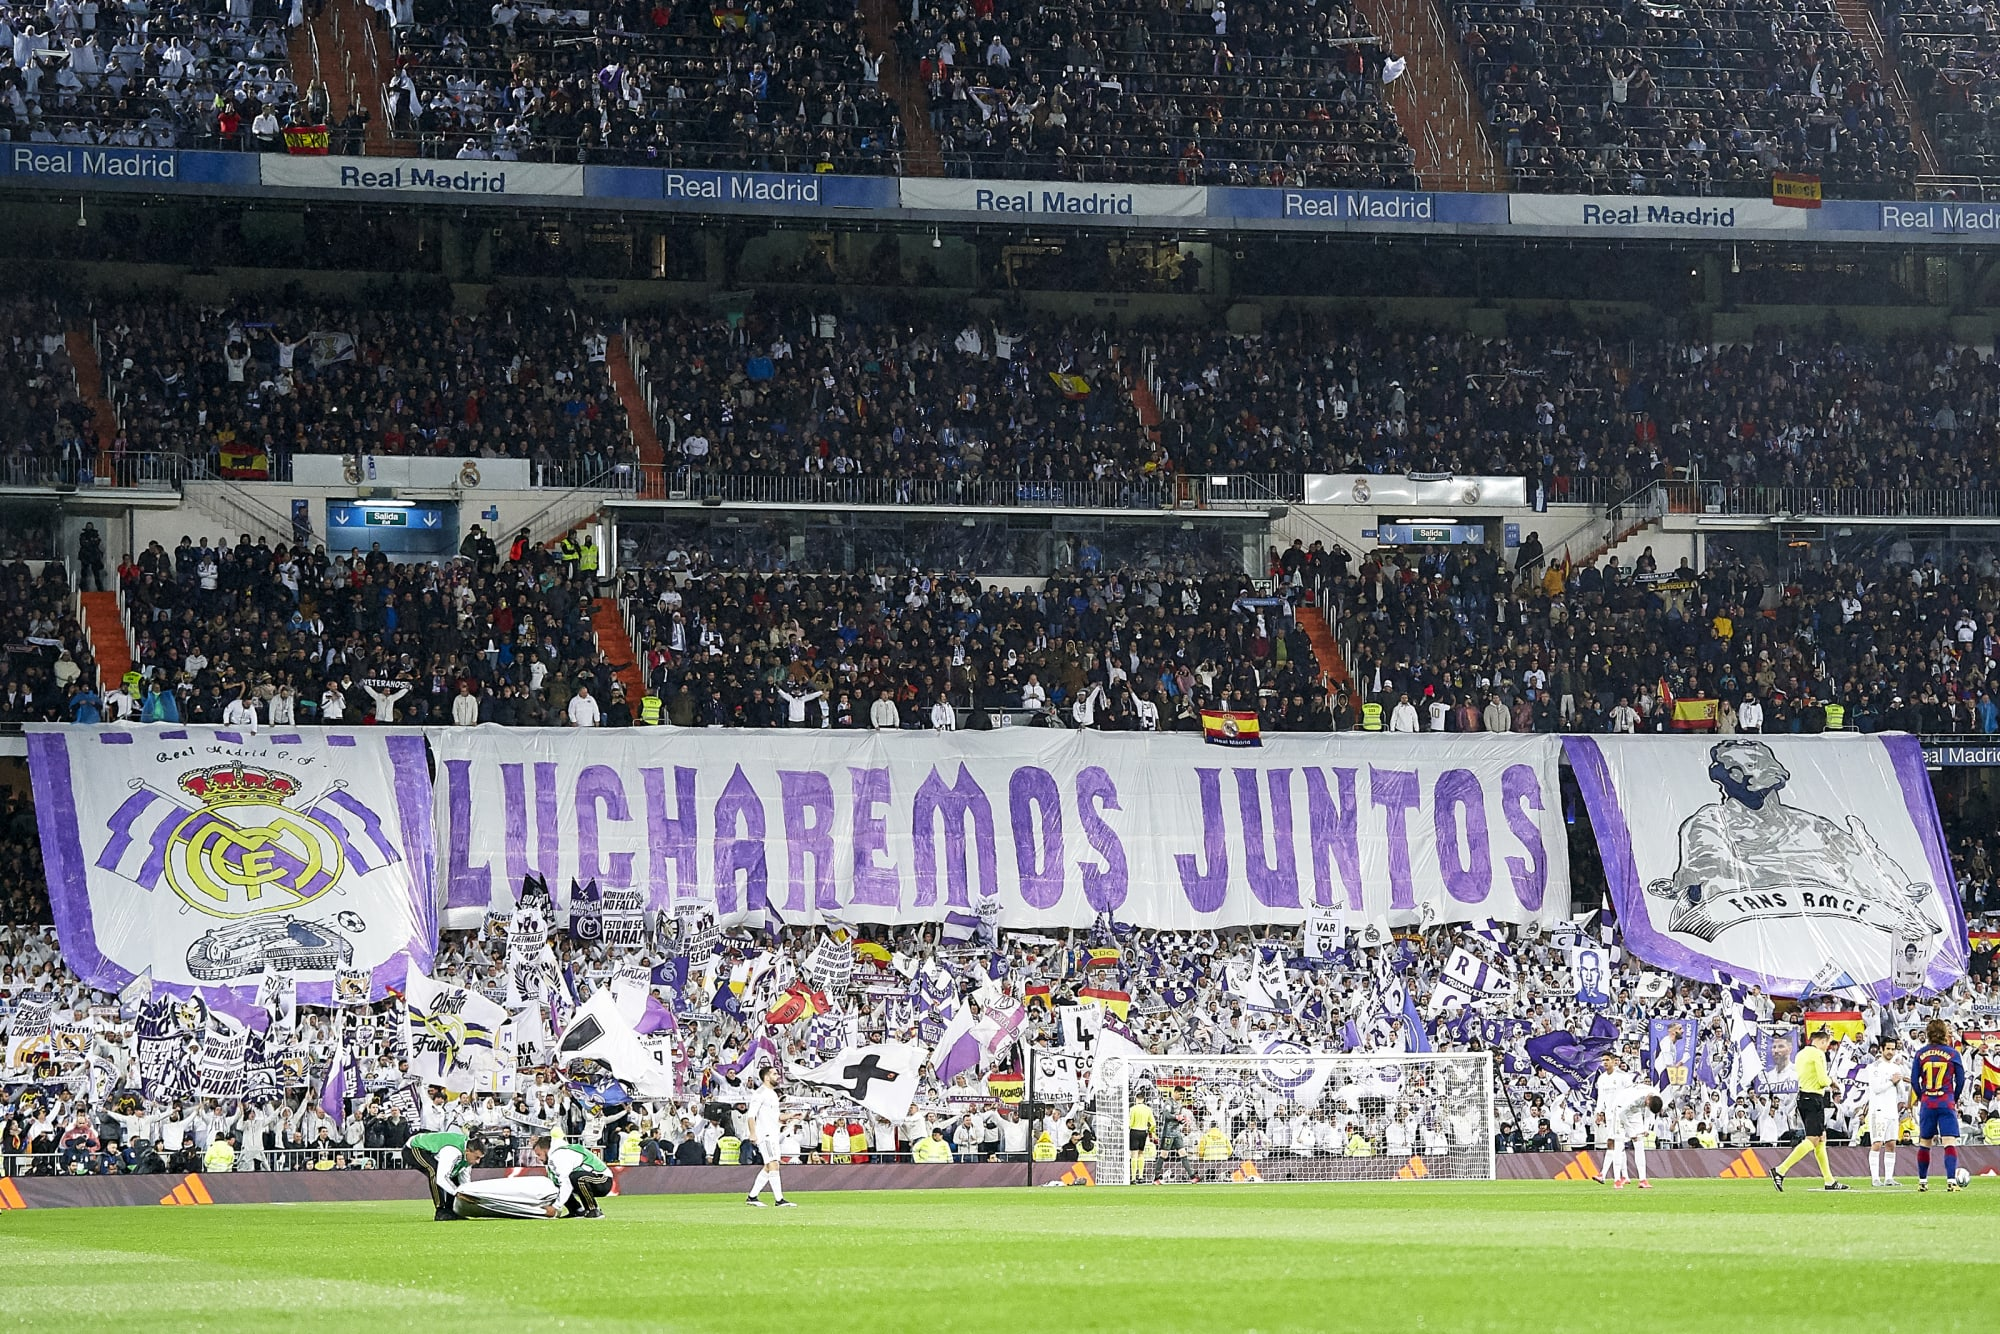 Real Madrid: It's Time to Practice Patience